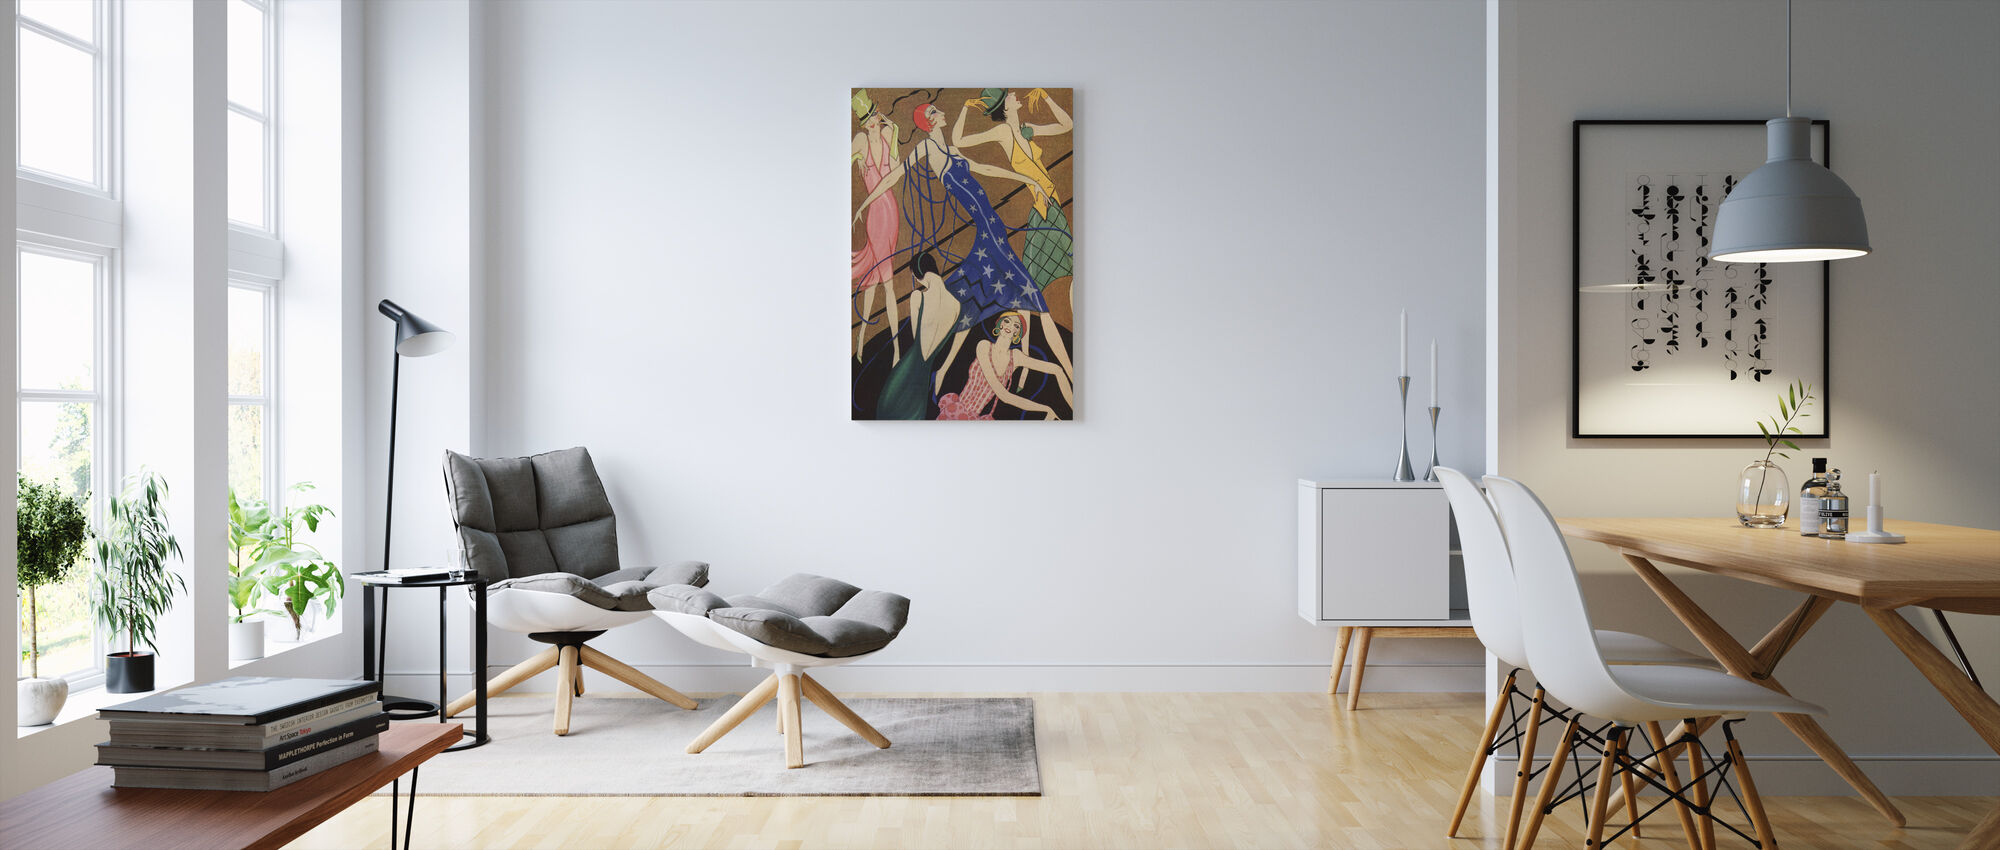 Models in Party Dresses, Gordon Conway - Canvas print - Living Room